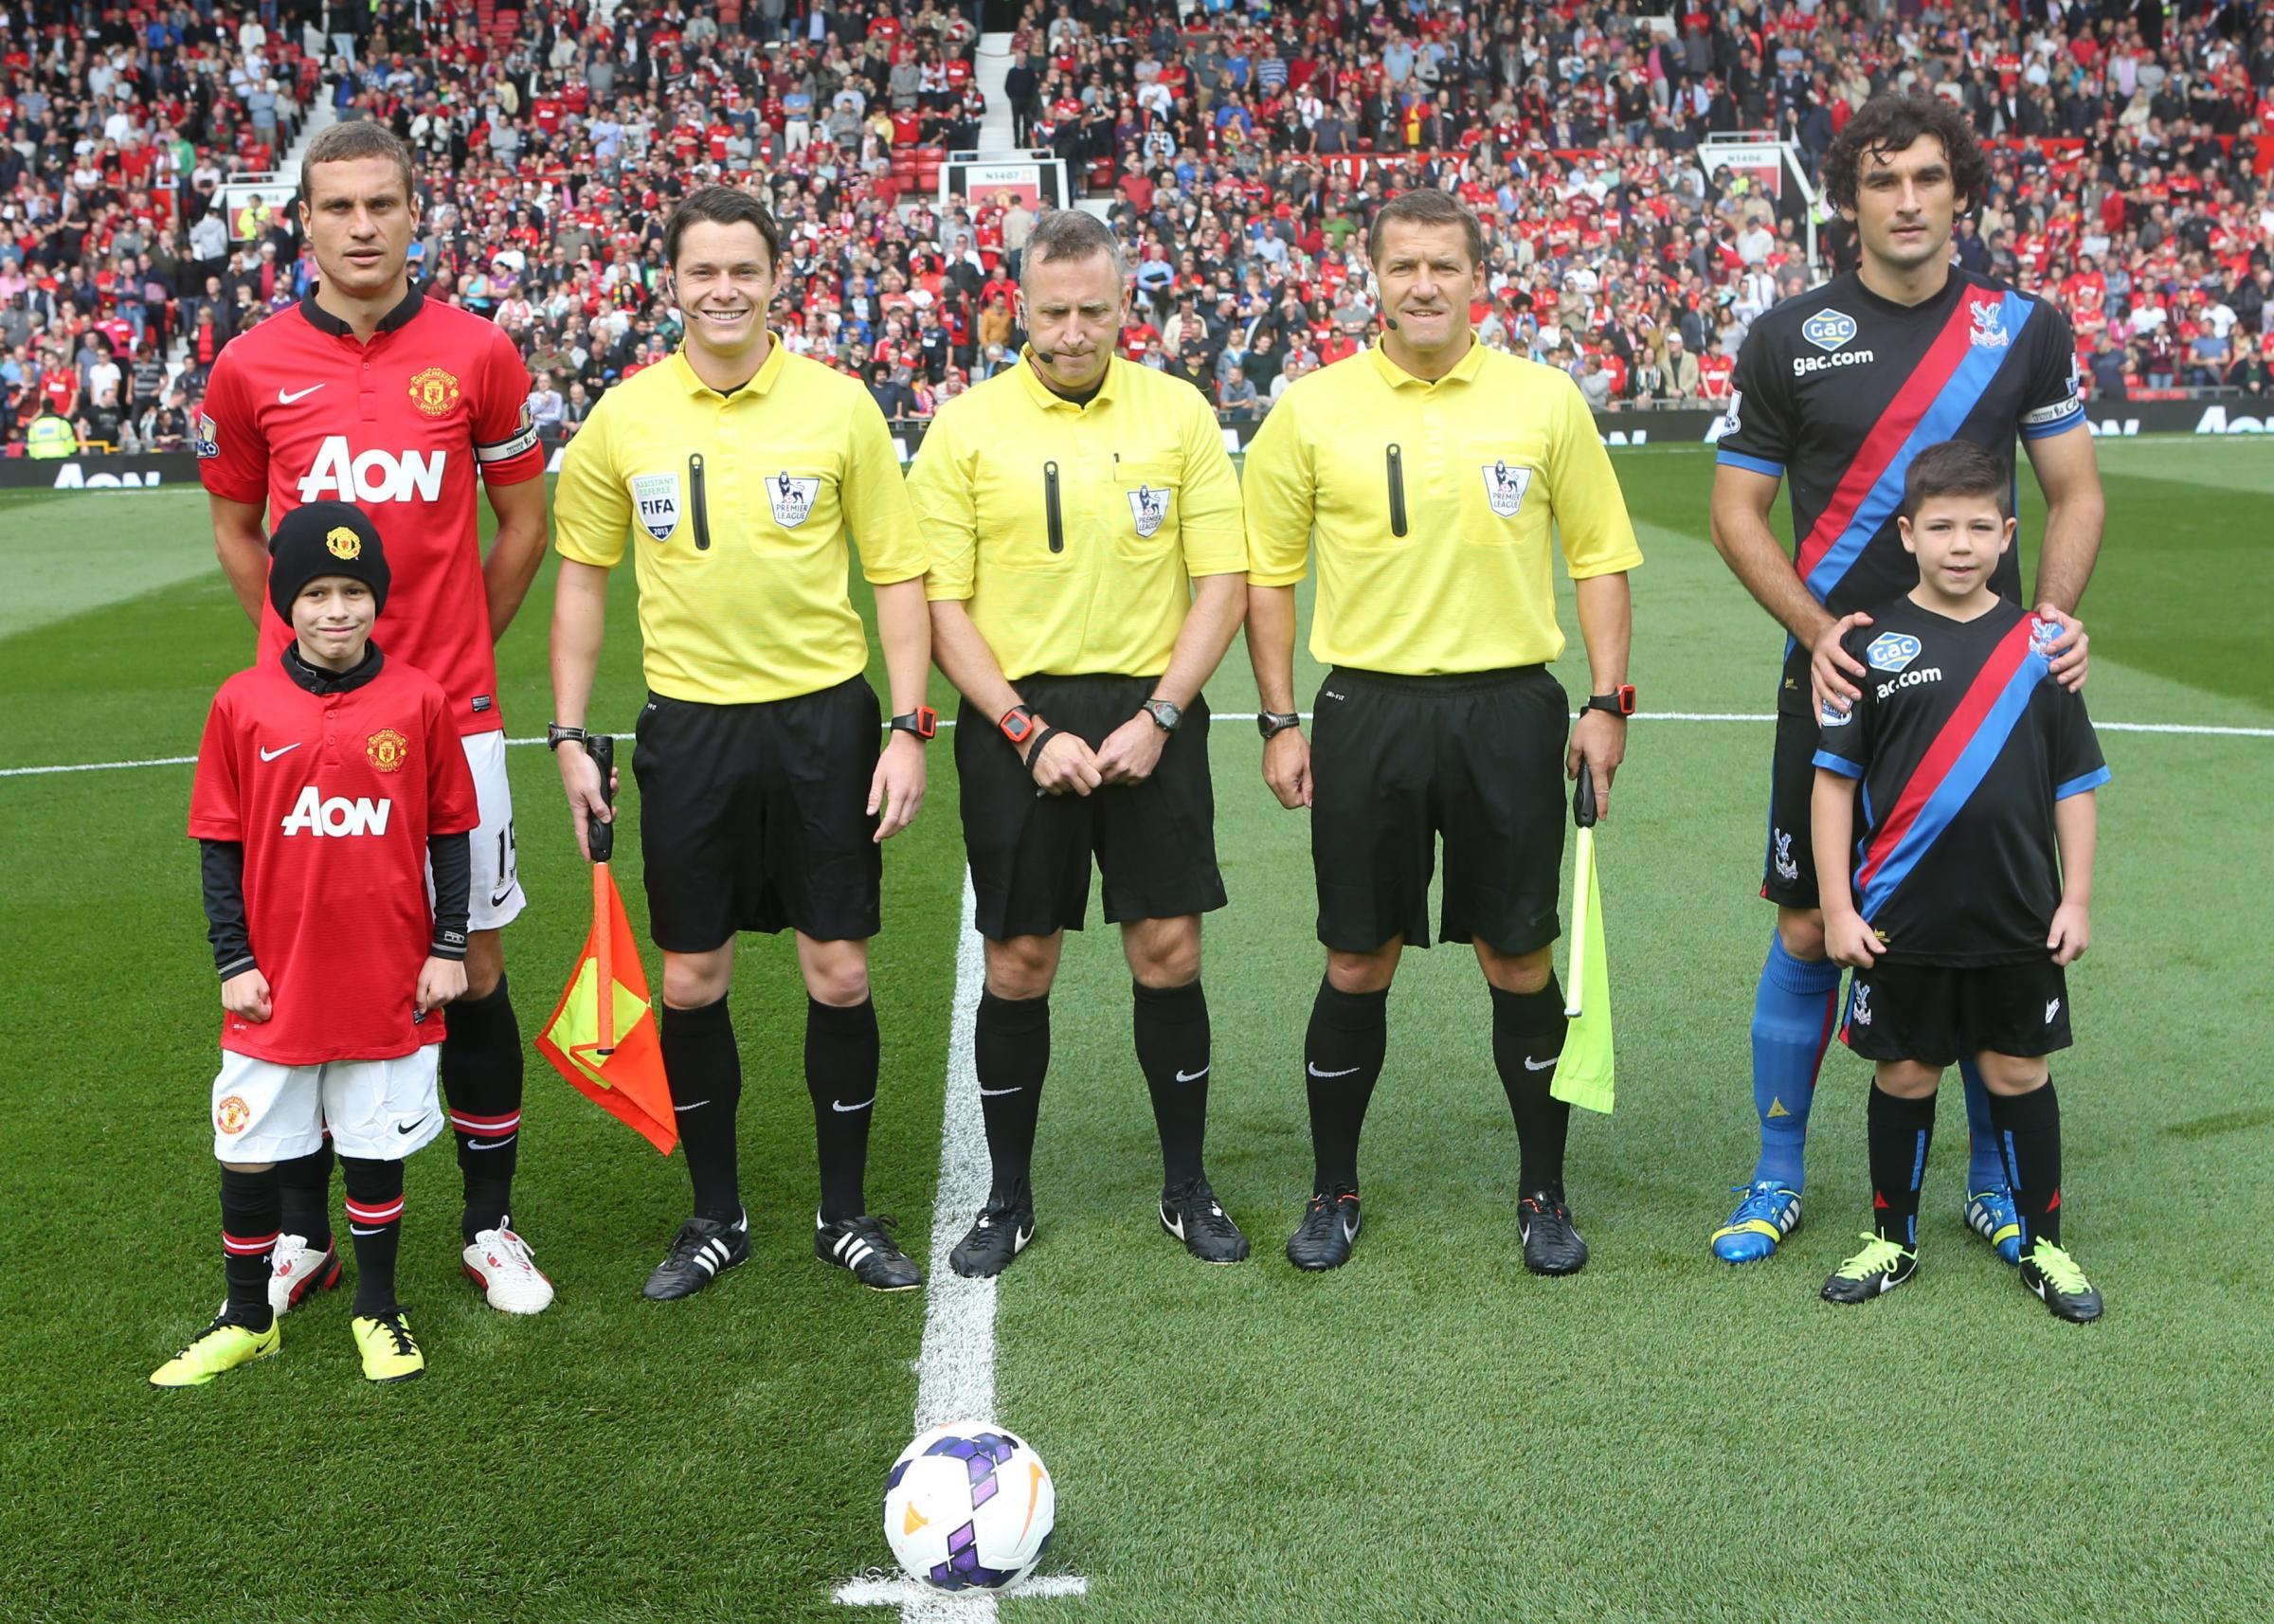 Oscar Hughes was a mascot at the Barclays Premier League match between Manchester United and Crystal Palace at Old Trafford last September.